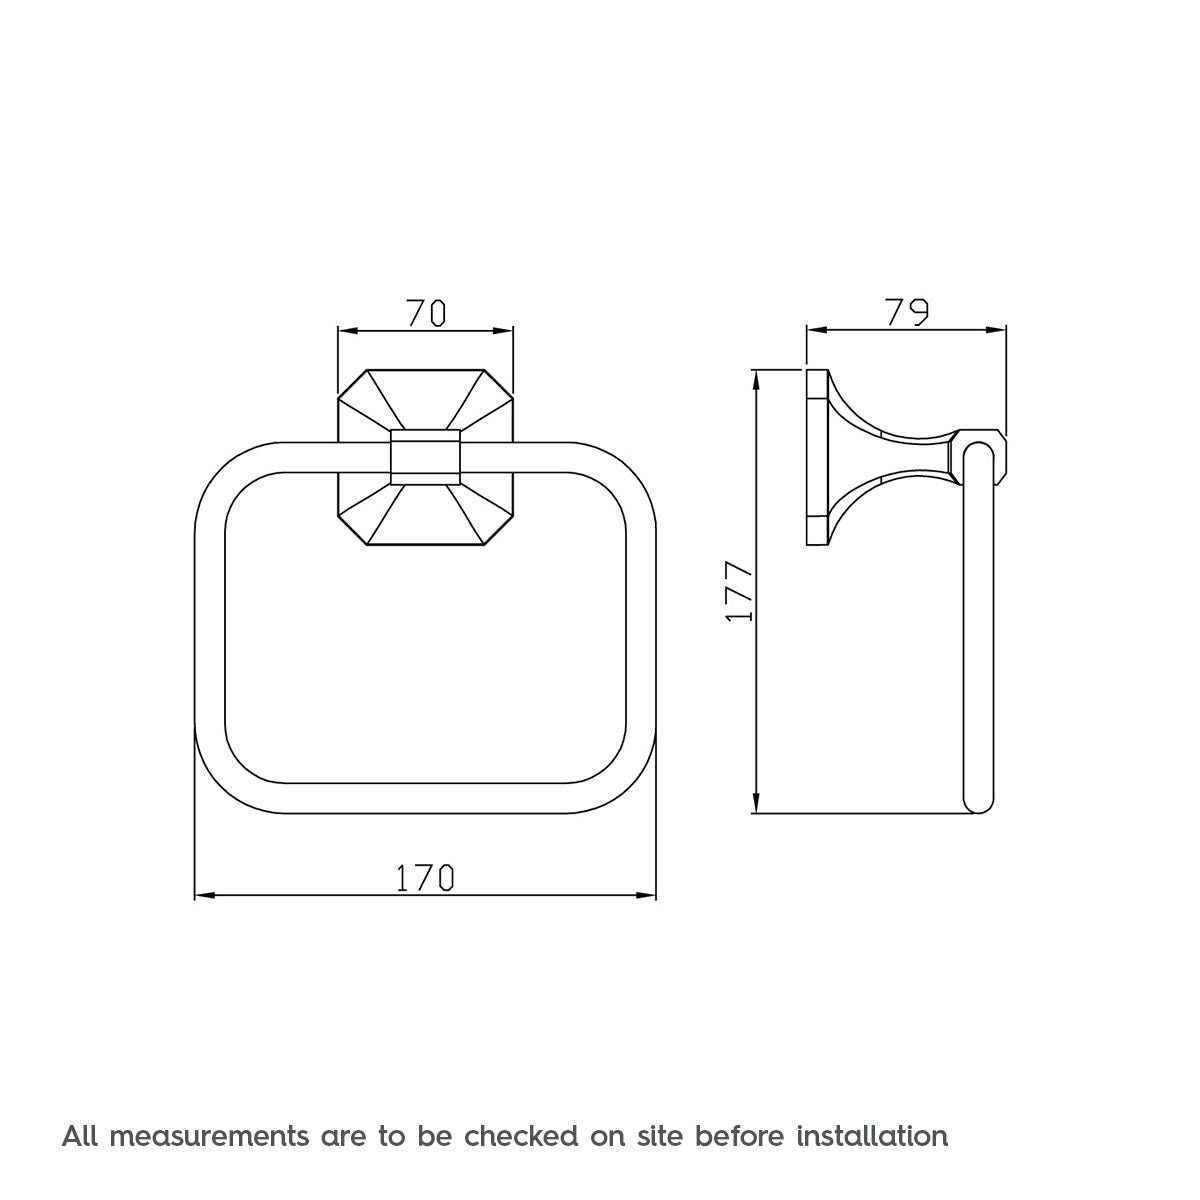 Dimensions for The Bath Co. Camberley square towel ring